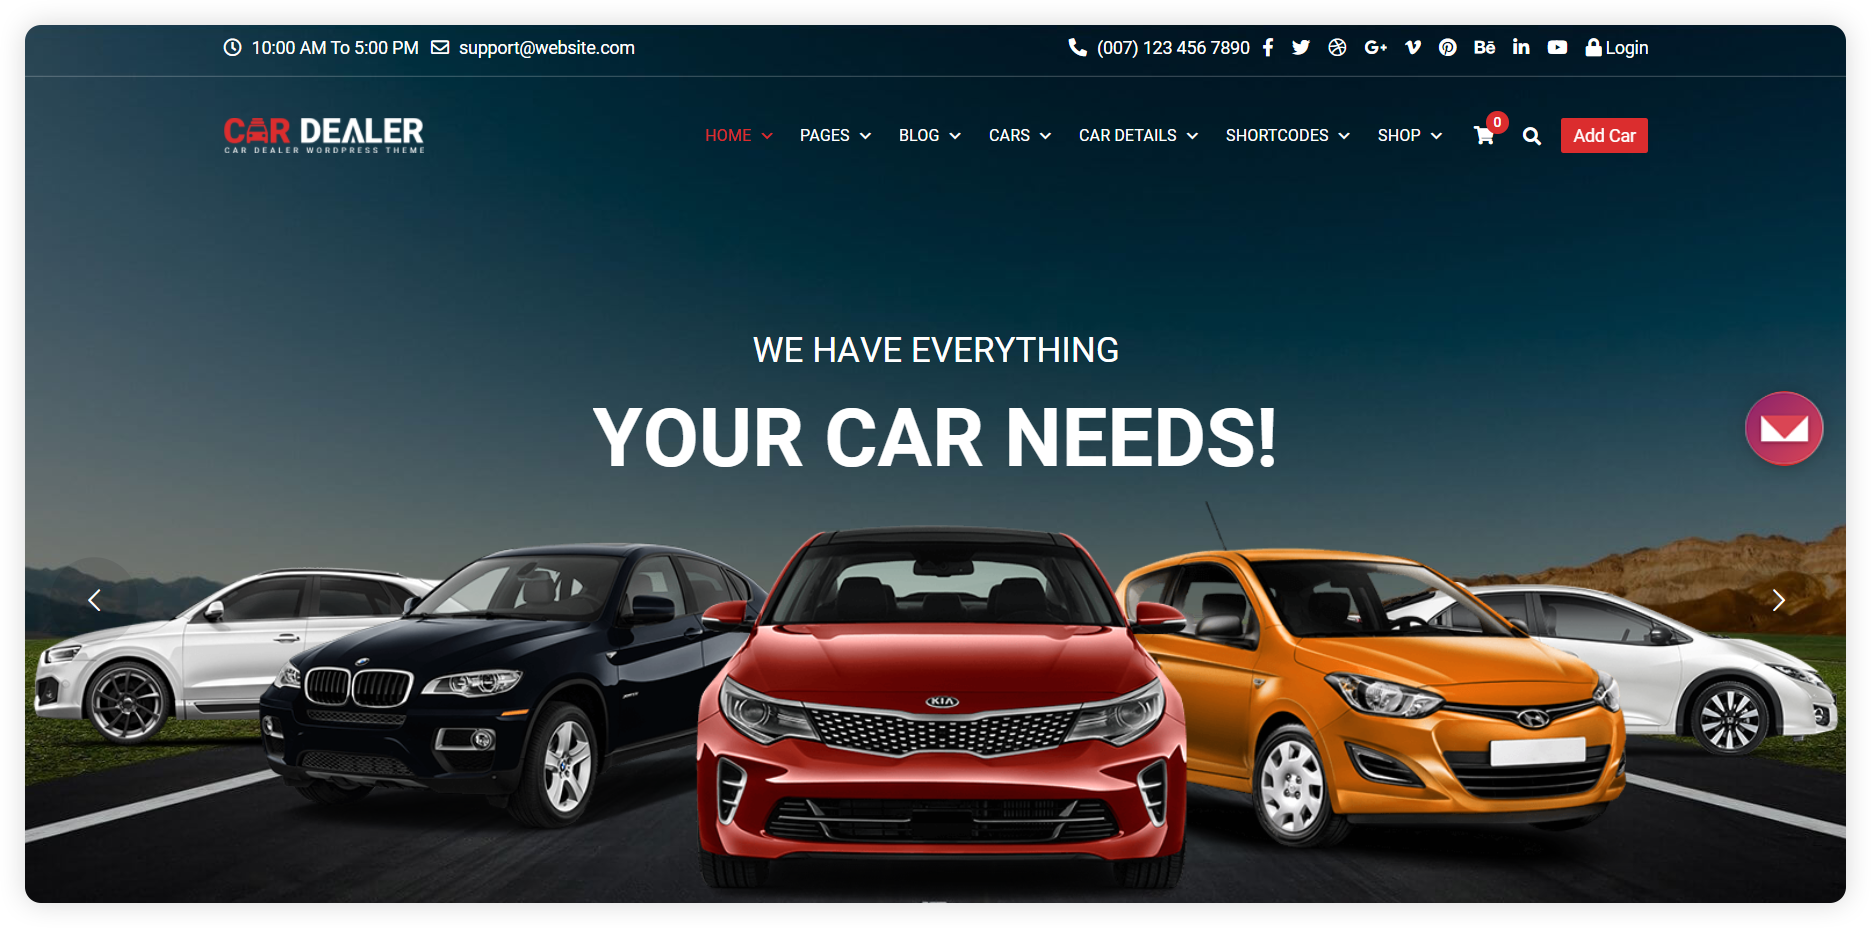 Live chat for the automotive industry